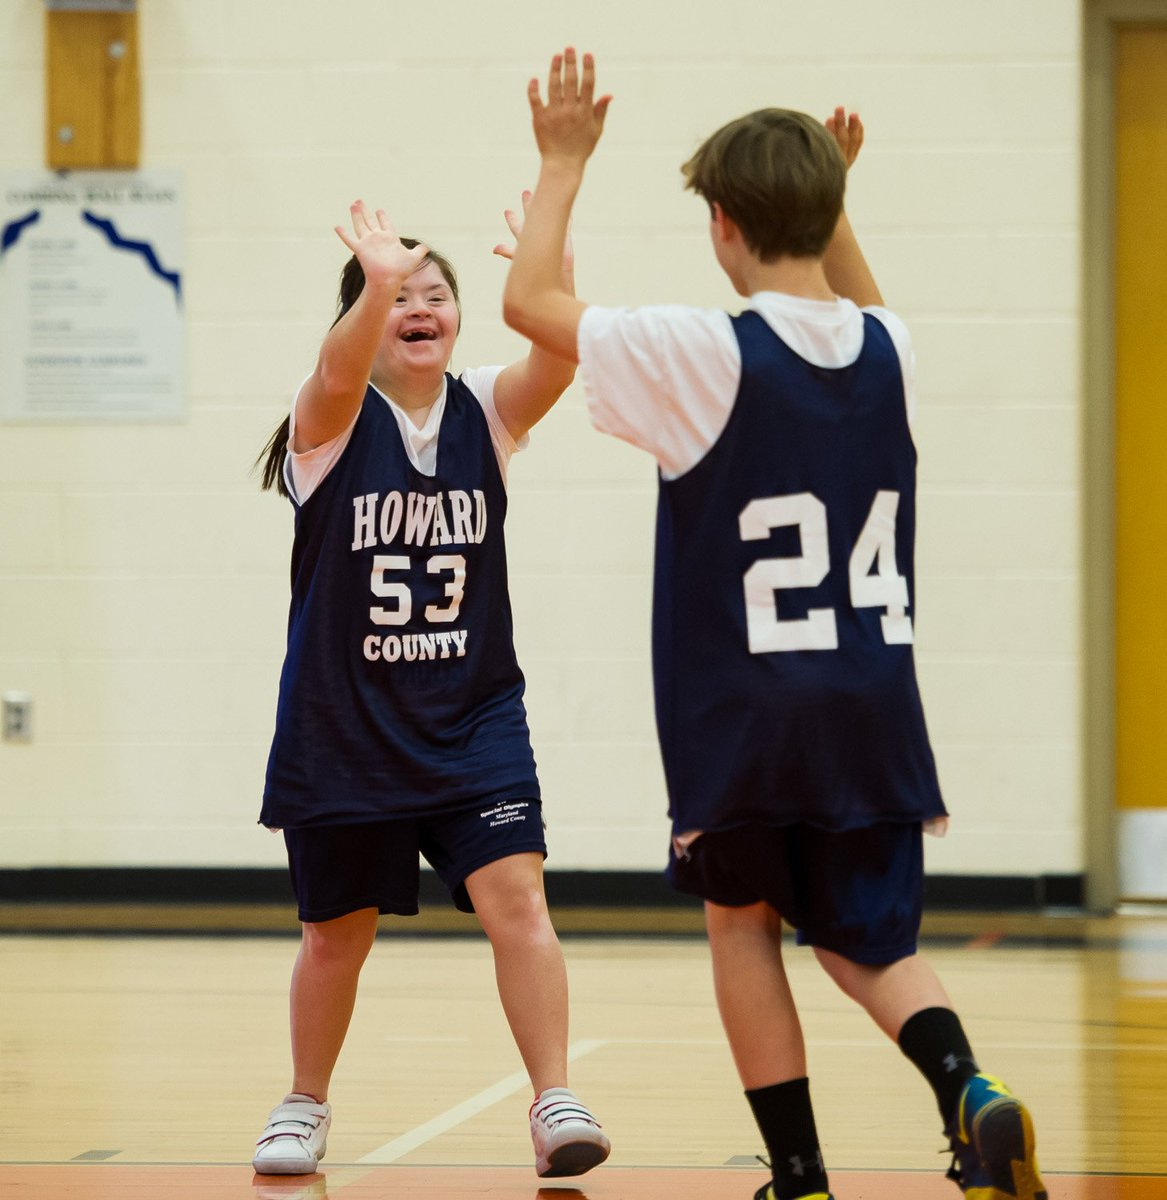 HAPPY. NATIONAL. HIGH. FIVE. DAY.  #NationalHighFiveDay #ChooseToInclude <br>http://pic.twitter.com/Msk4HbUa1w